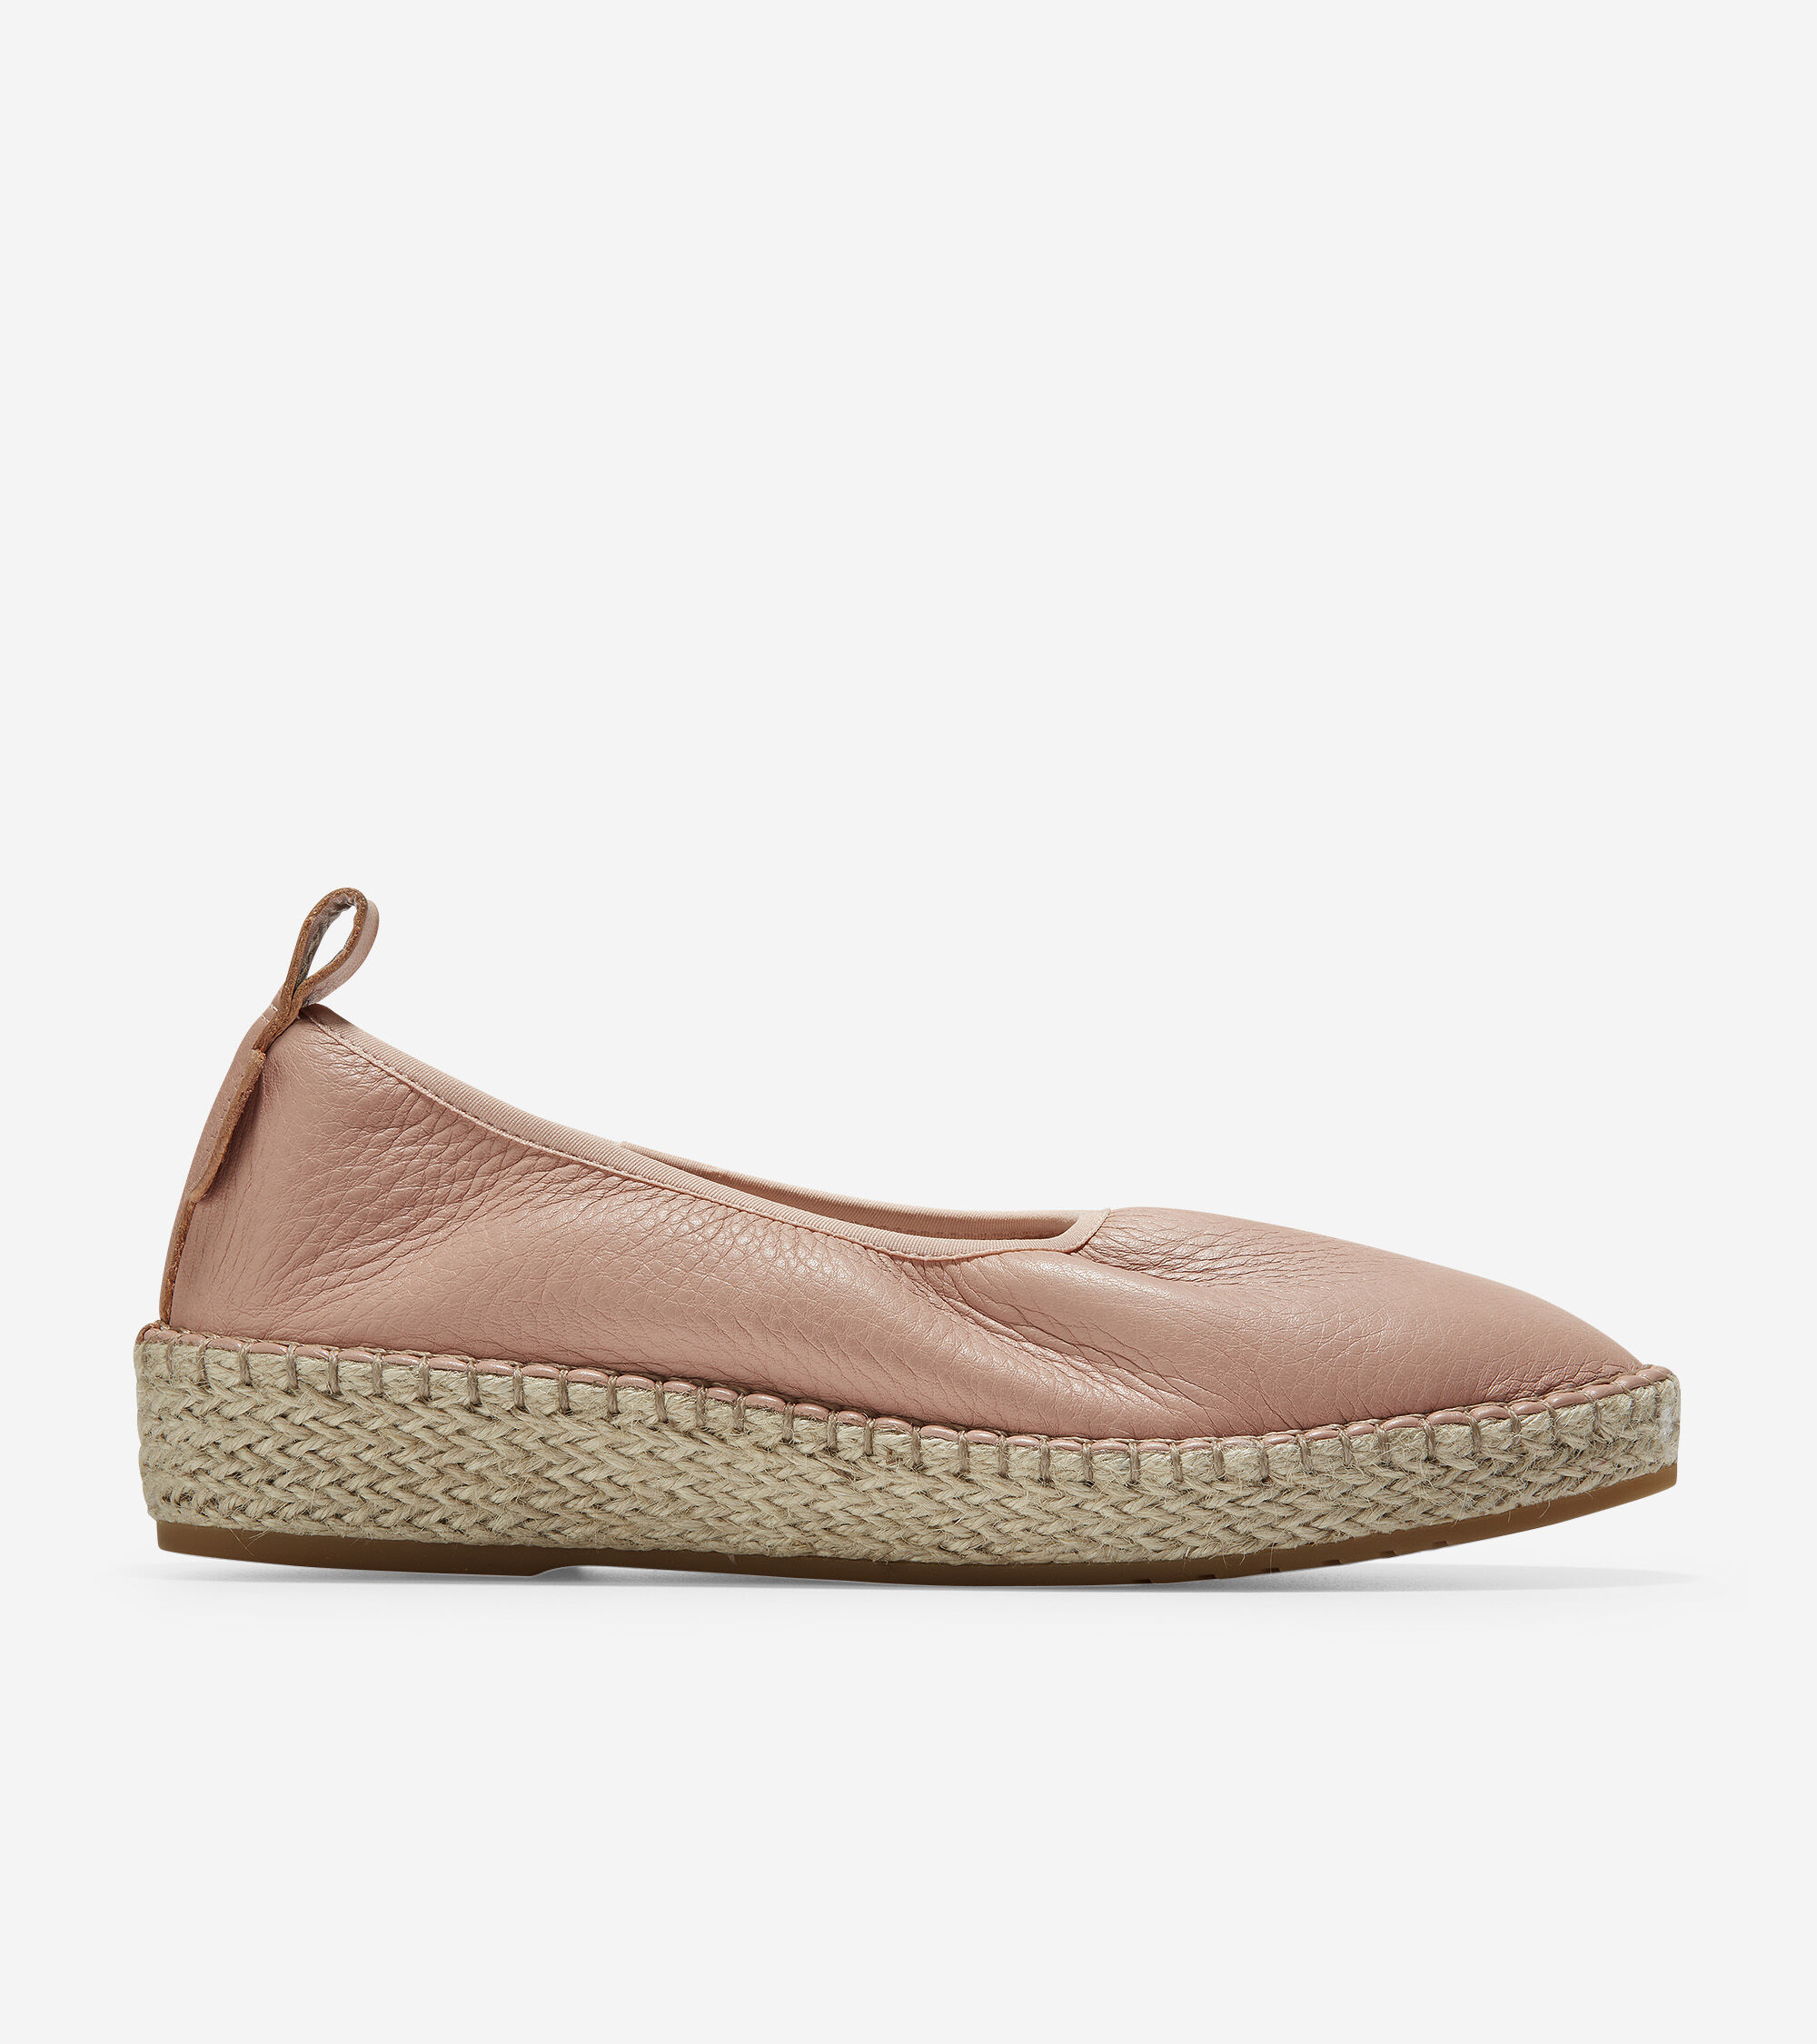 7393fe92a56e Women s Cloudfeel Espadrille Wedges in Mahogany Rose